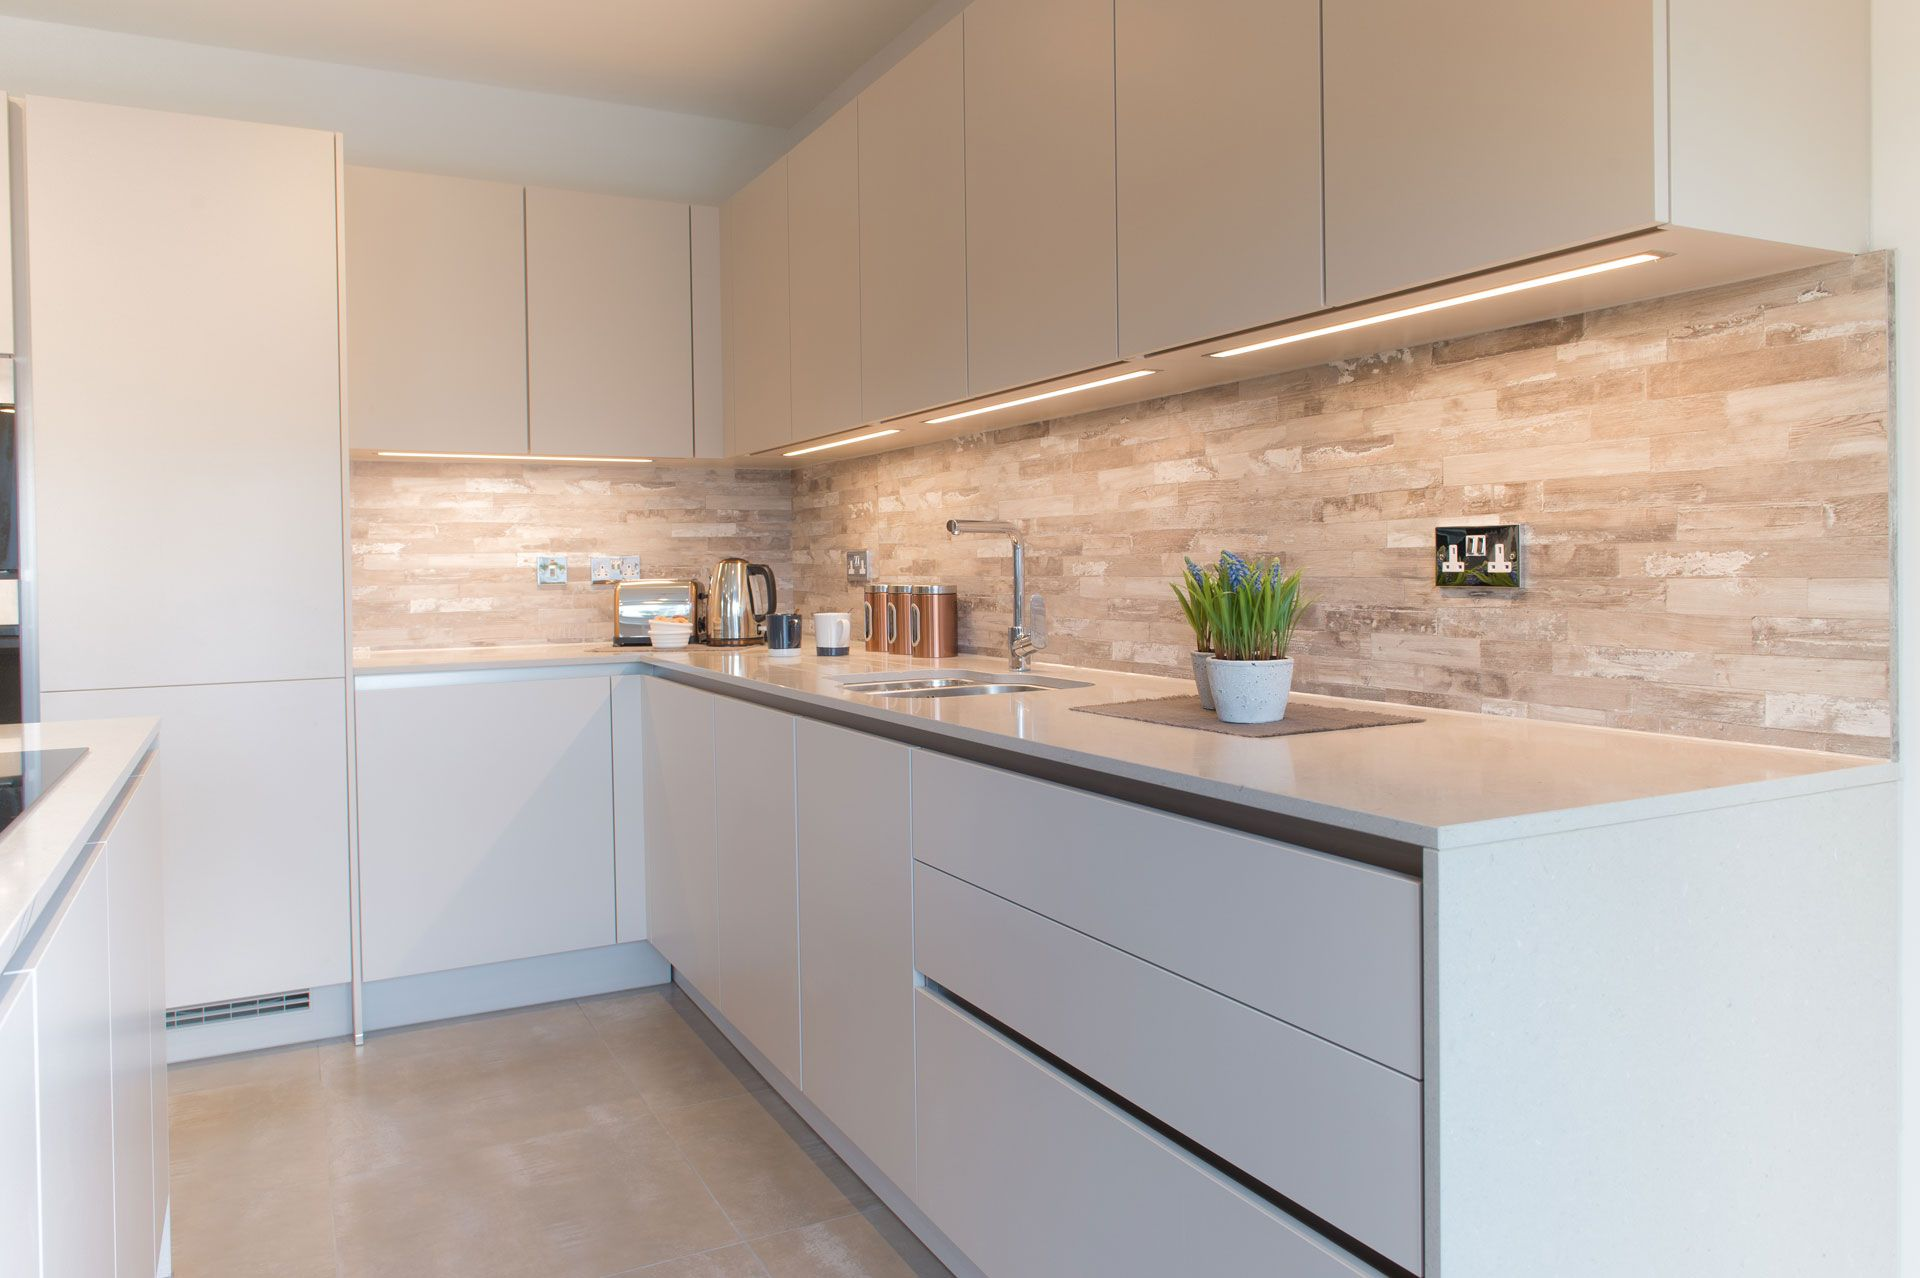 Case Study Two - Ruby & Grey | ideas for new kitchen | Pinterest ...